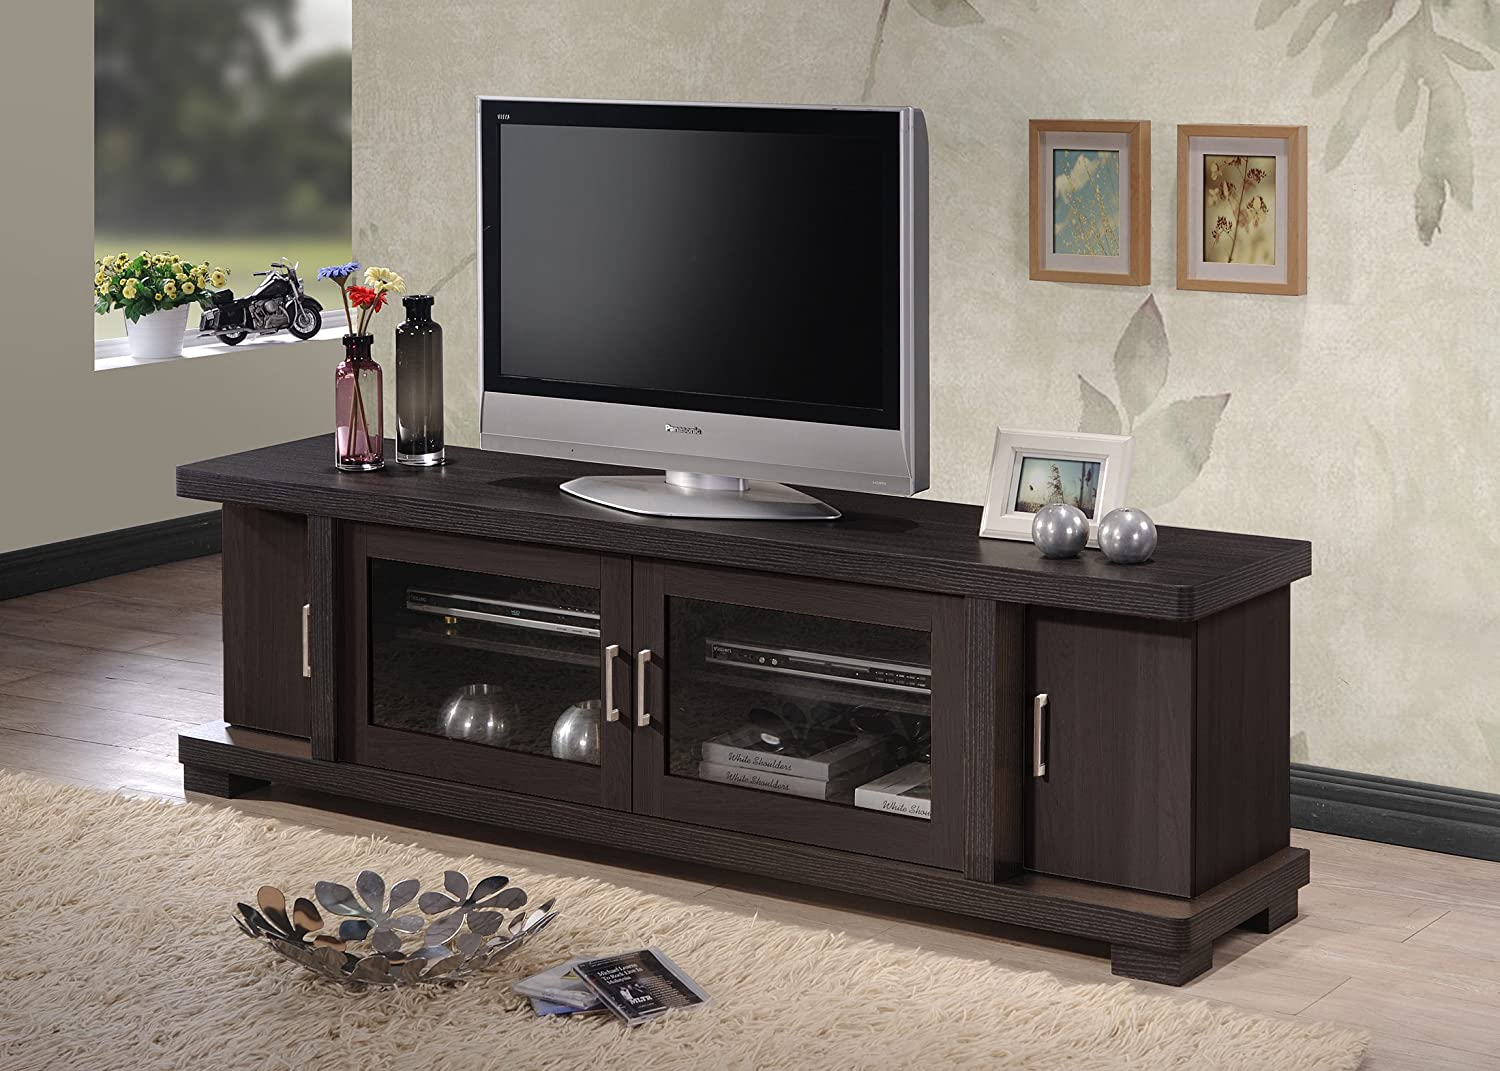 Amazoncom Wholesale Interiors Baxton Studio Viveka Dark Brown Wood